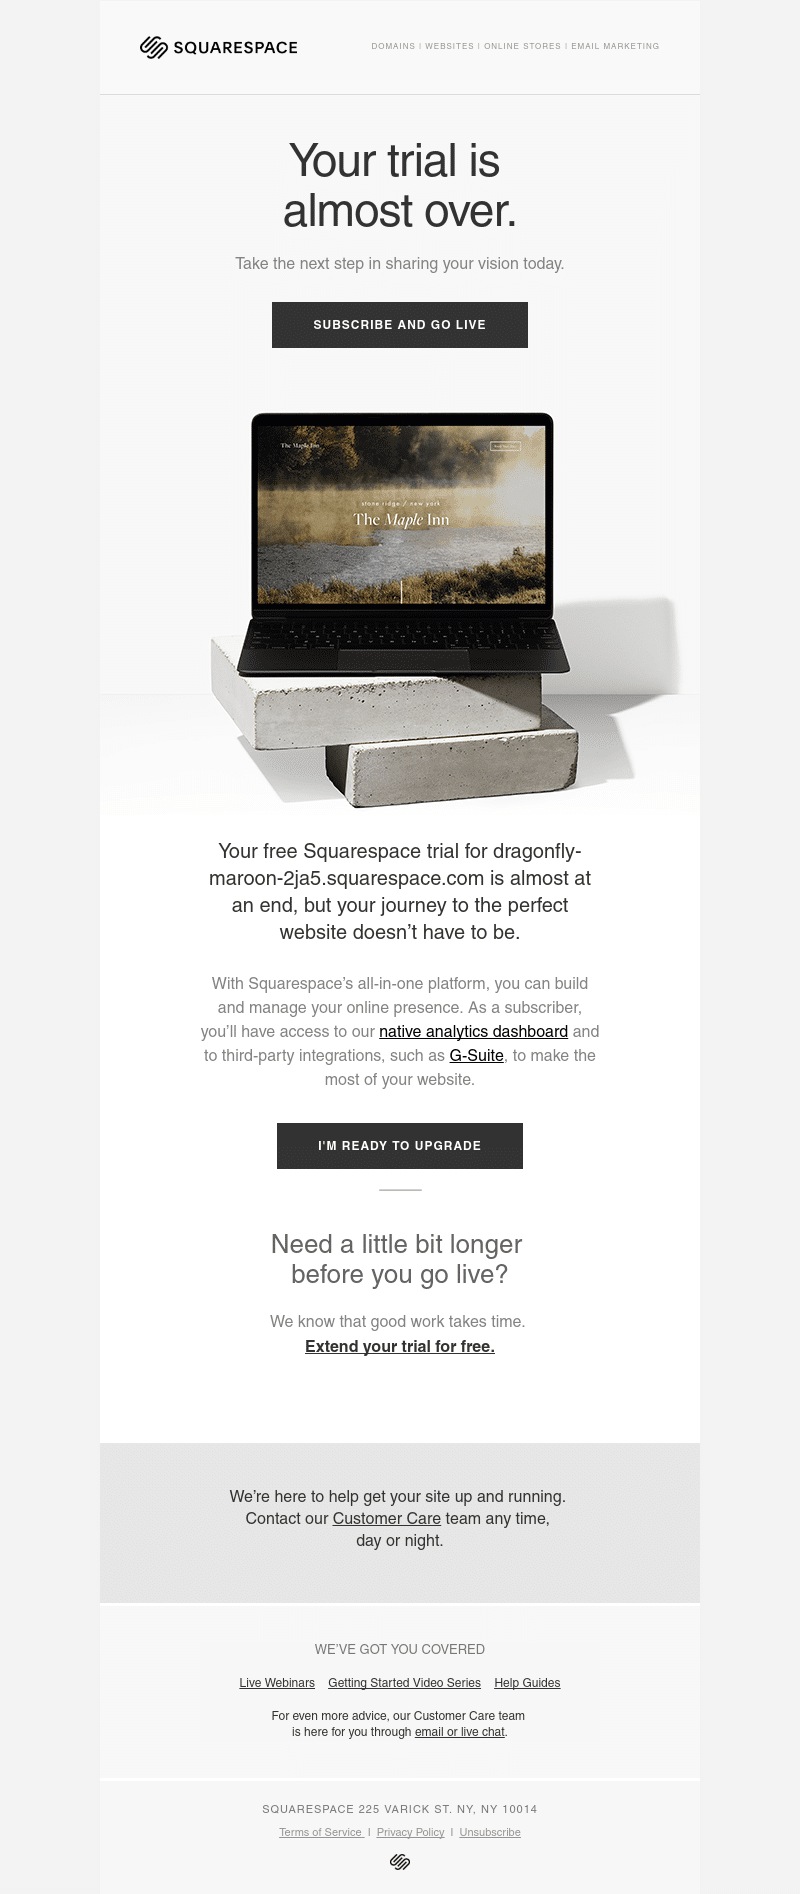 Squarespace user onboarding email example